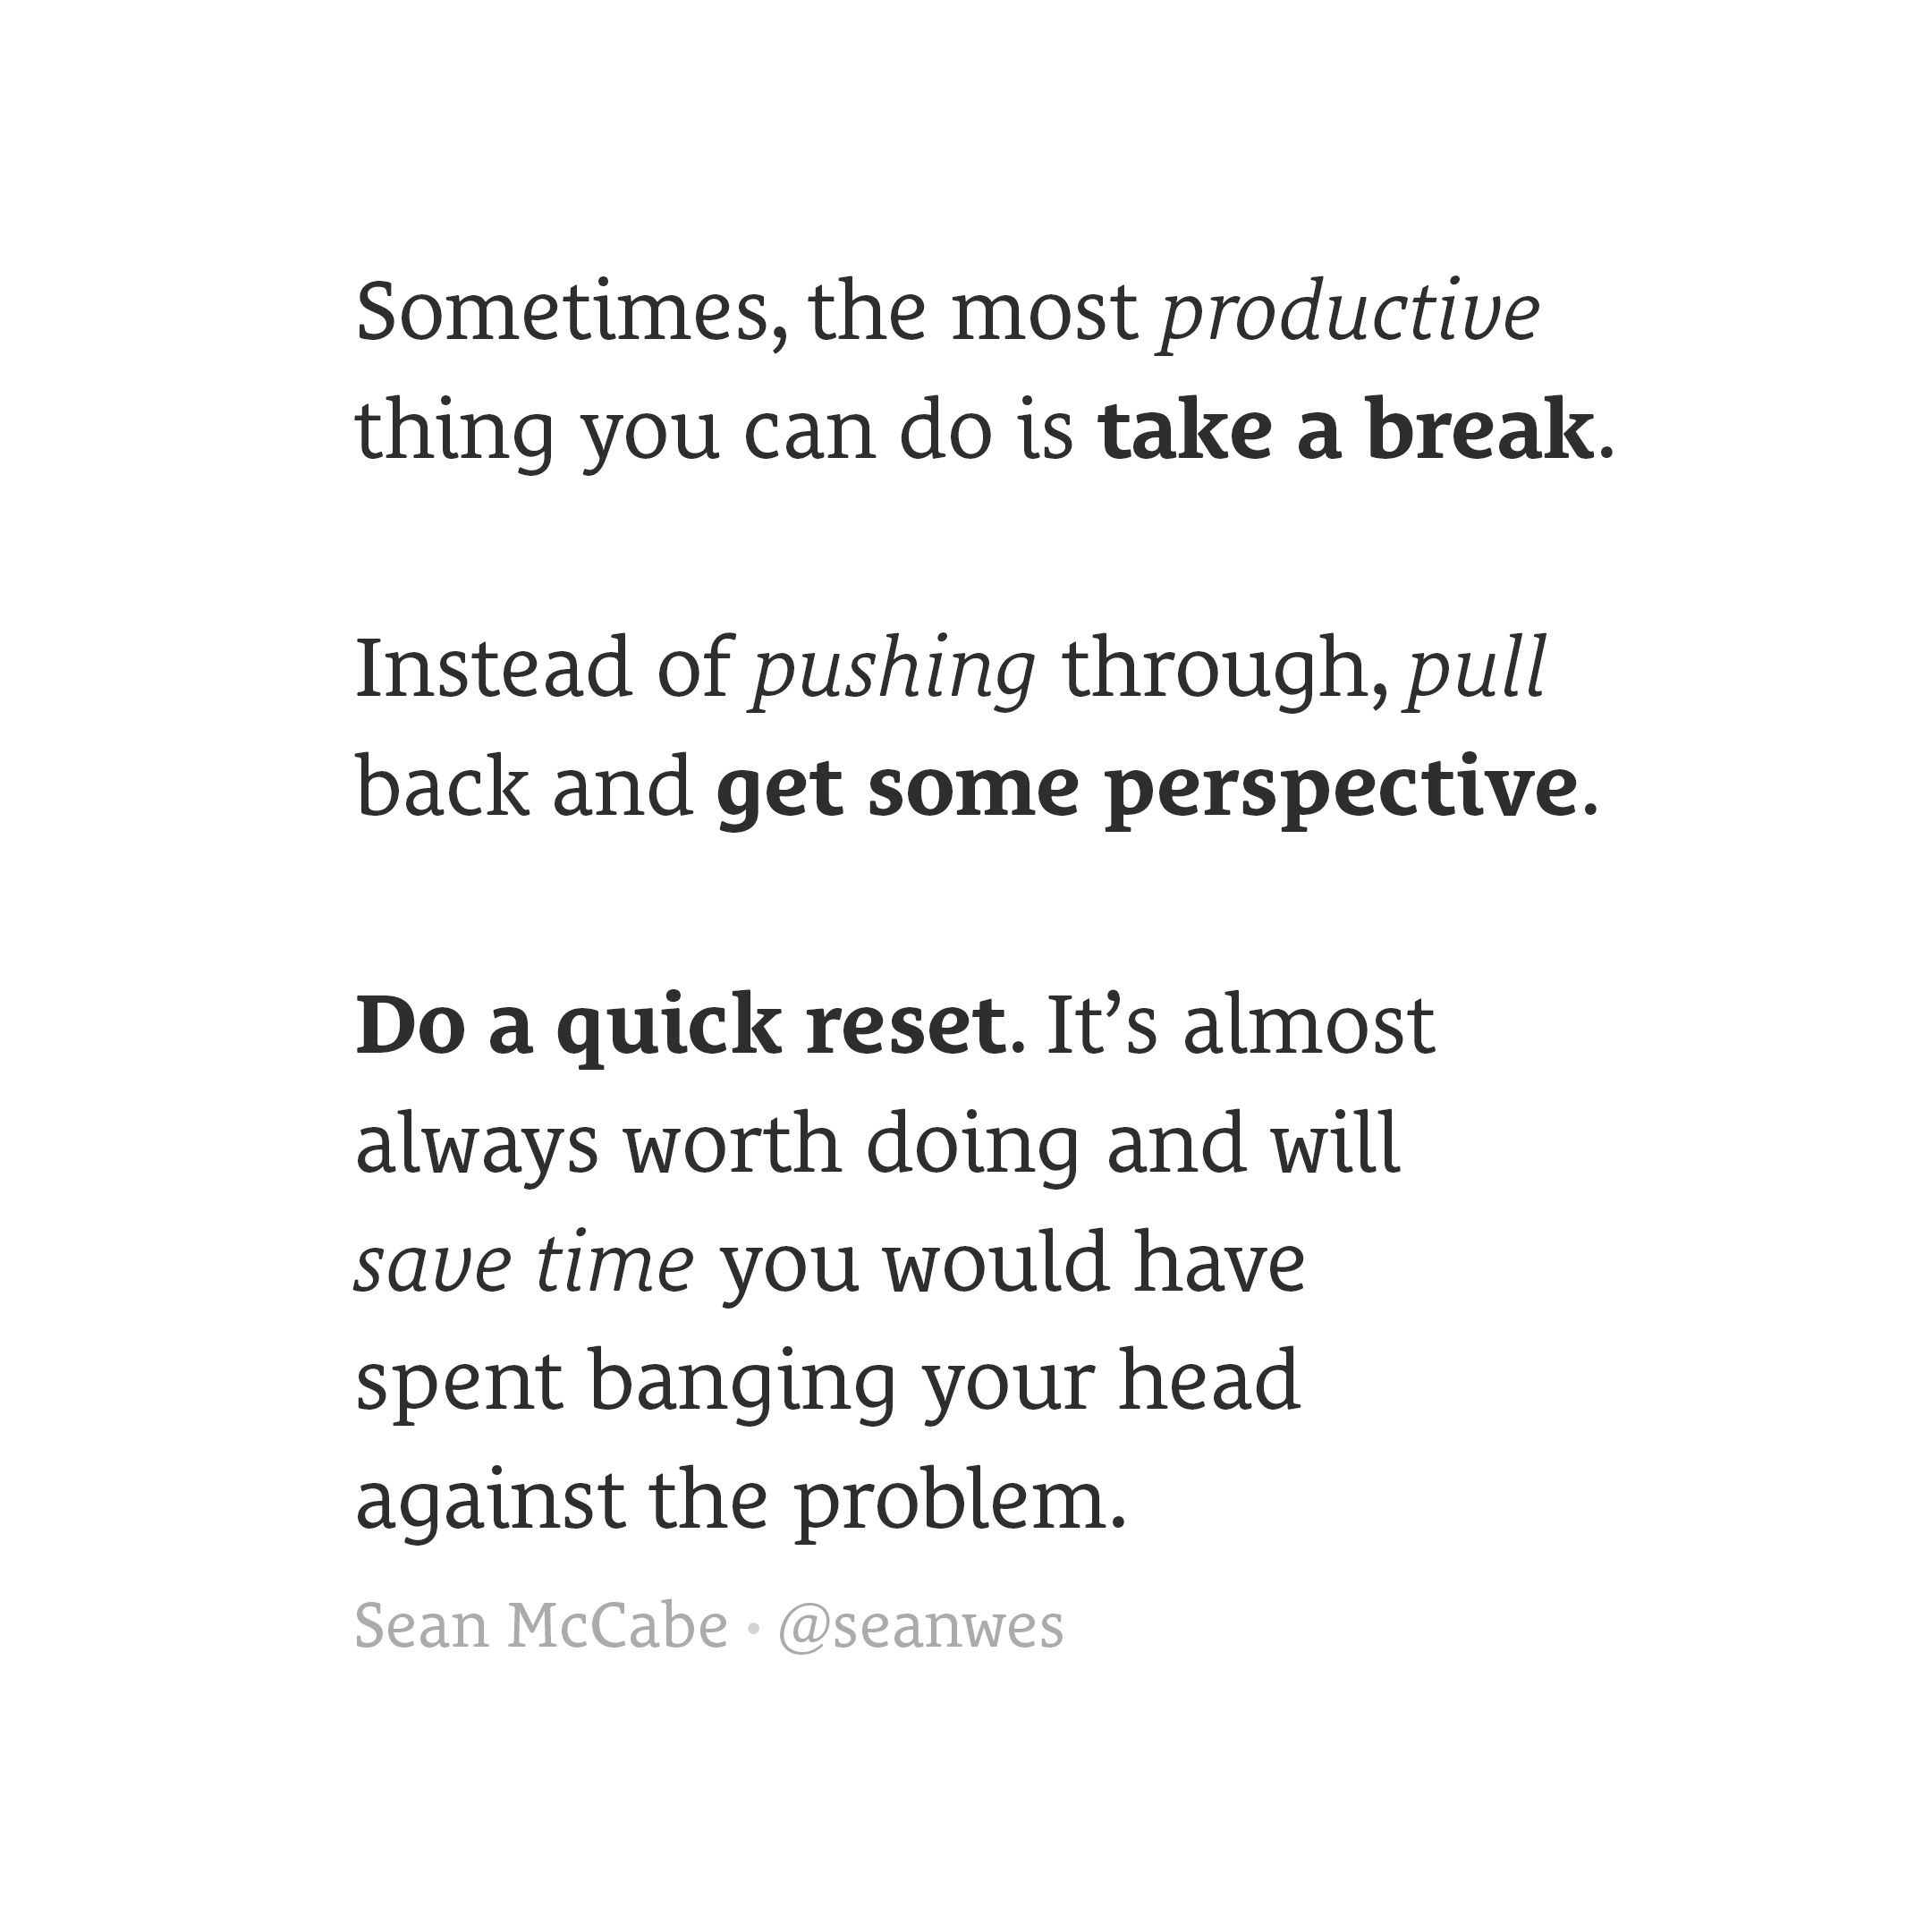 Sometimes, the most productive thing you can do is take a break.